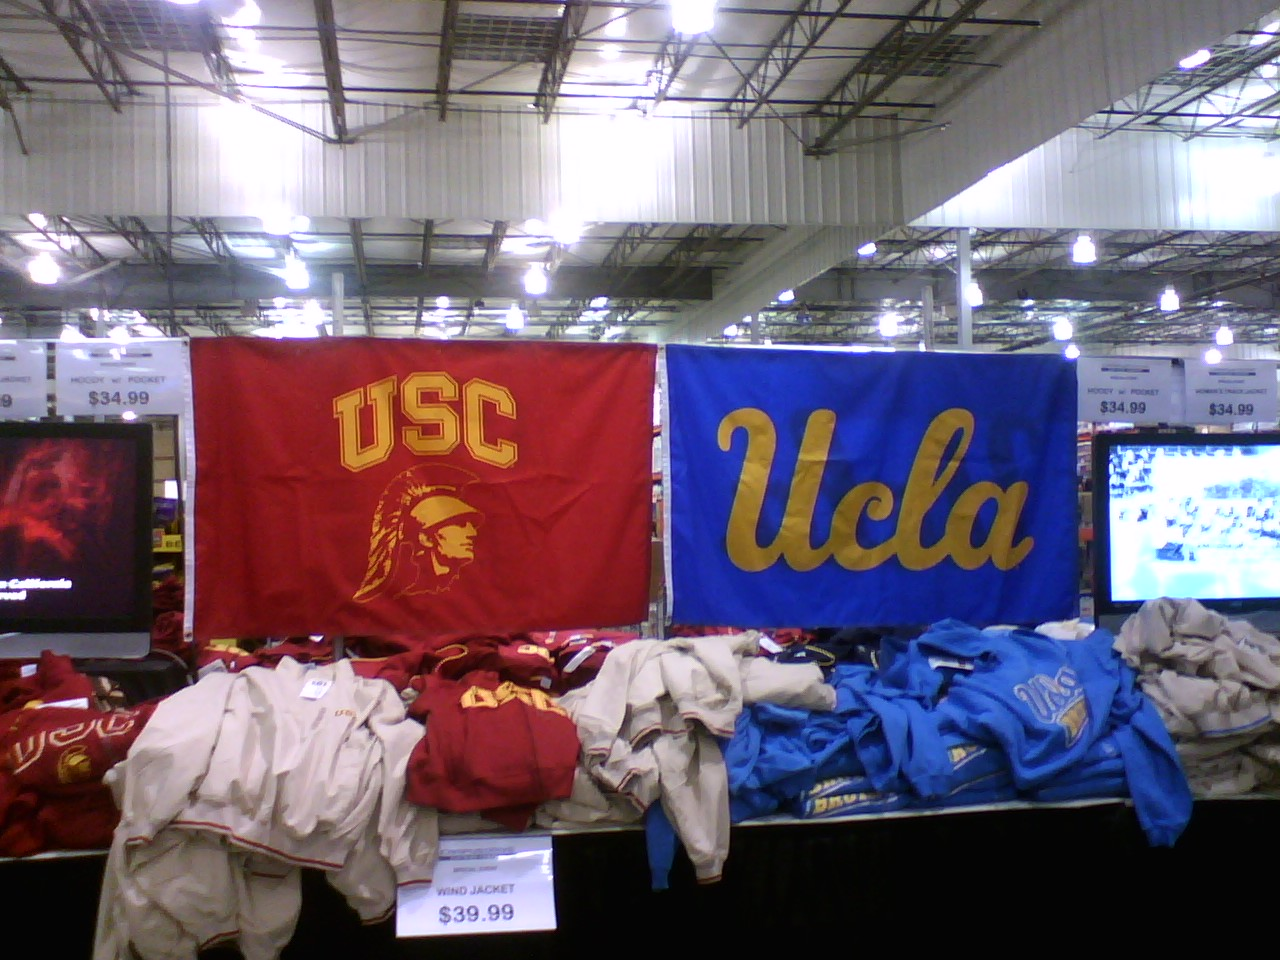 finest selection 4ac39 99850 File:UCLA and USC gear on sale at Costco.jpg - Wikimedia Commons